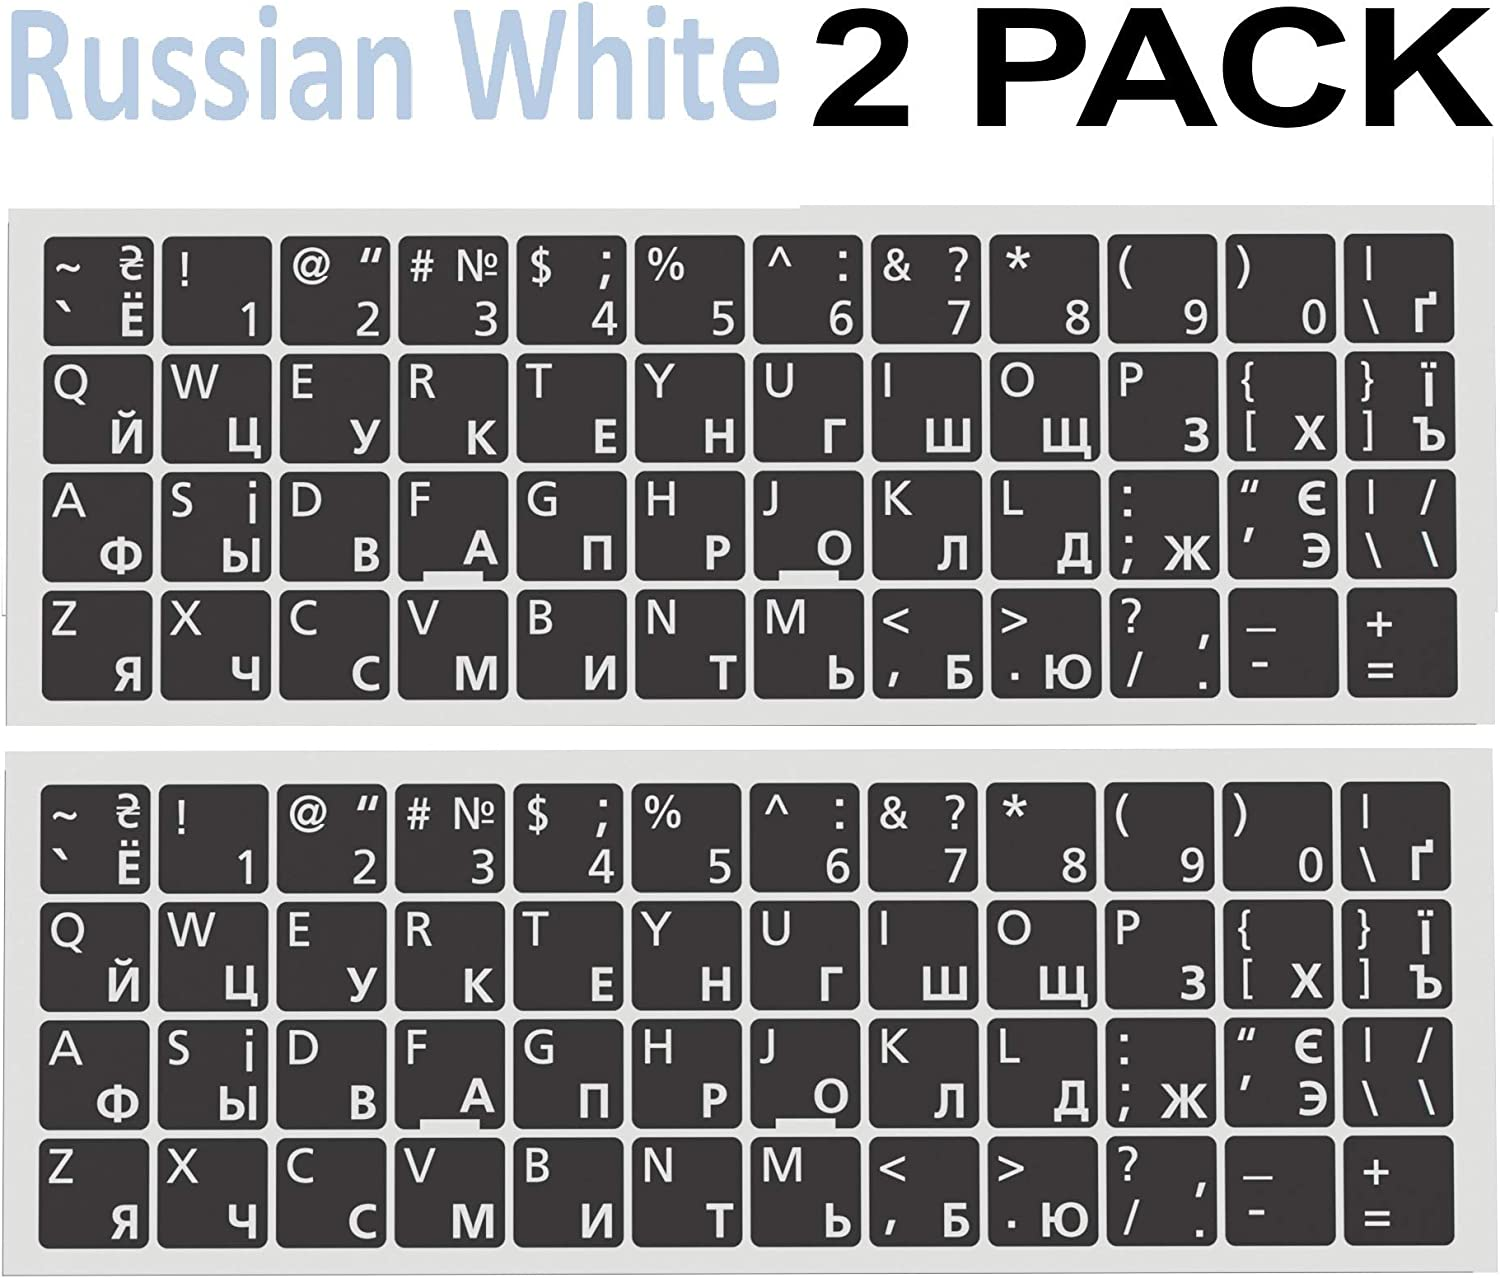 Universal Russian-English Keyboard Stickers - 2 PCS - Replacement Ergonomic Cyrillic None Transparent PC Large White Lettering Black Background for Notebook Desktop Computer Laptops